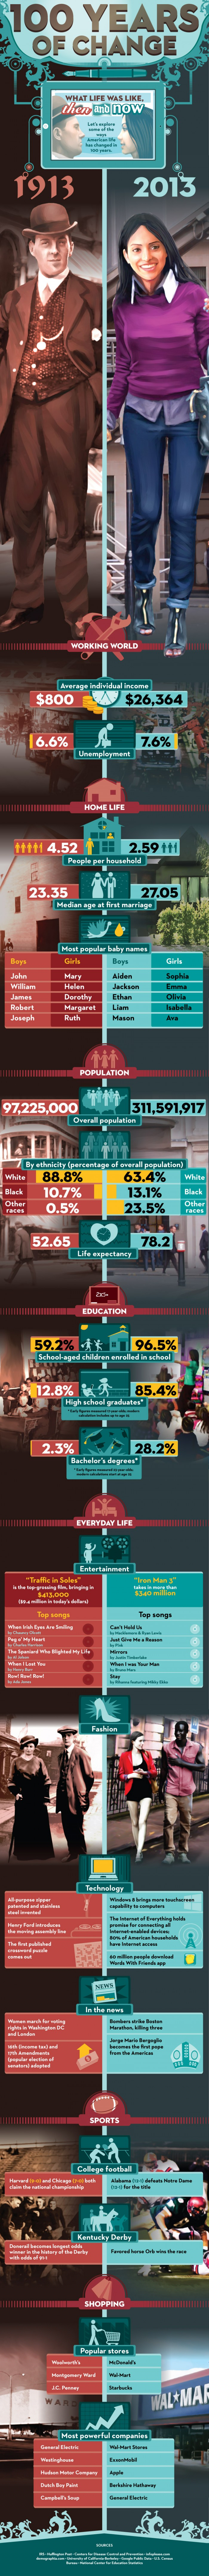 From http://infographic.city/life-like-now-100-years-change/